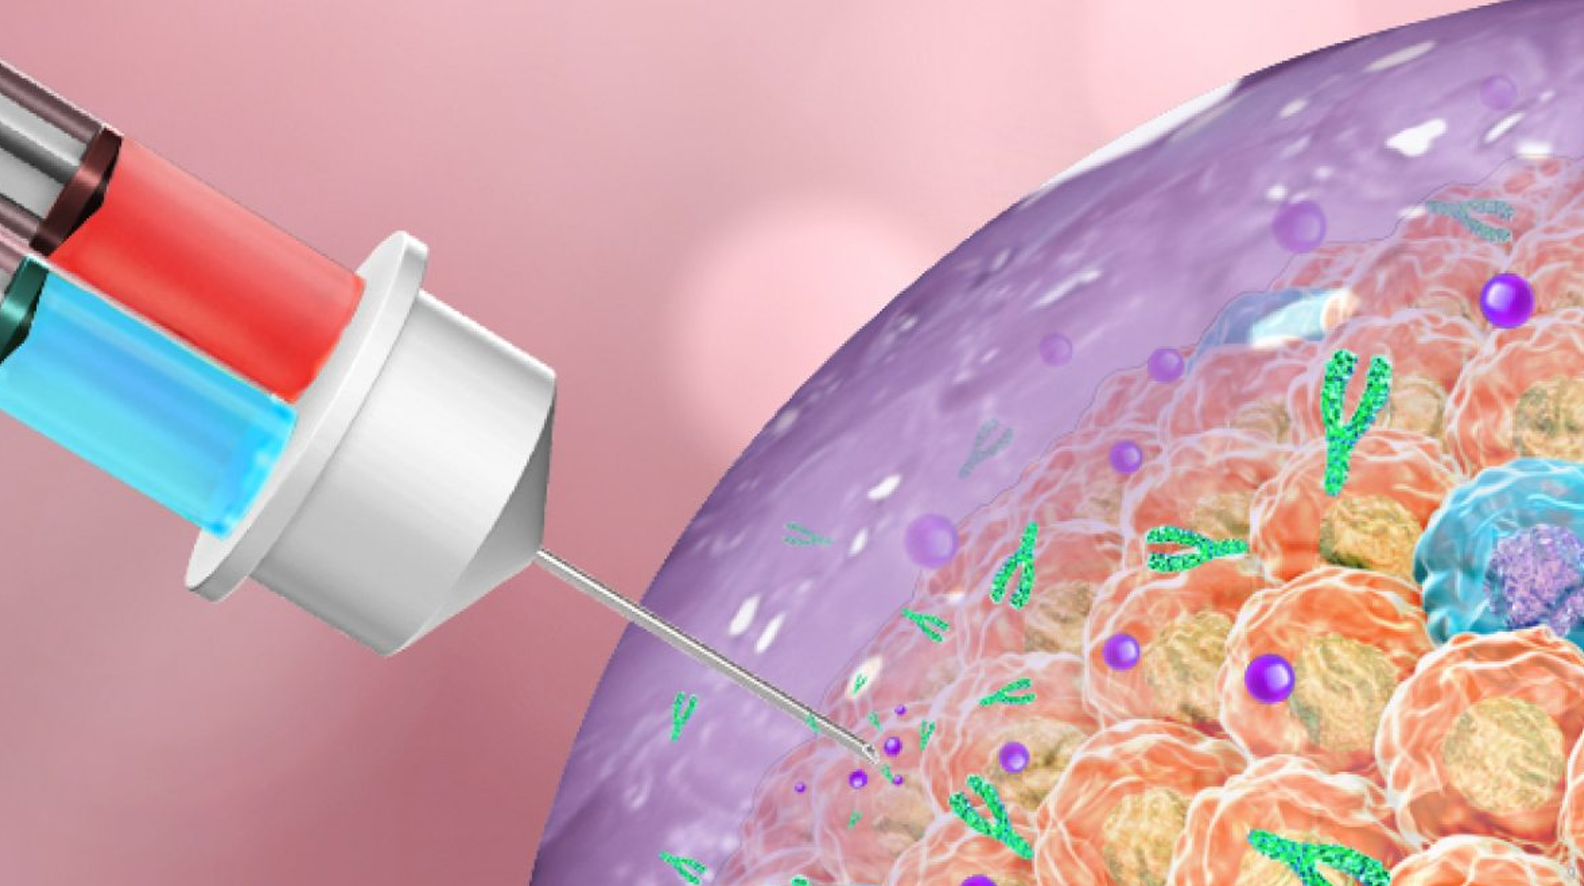 When injected into tumors, this therapy forms a gel to attack cancer cells. (Graphic by Gu Lab)